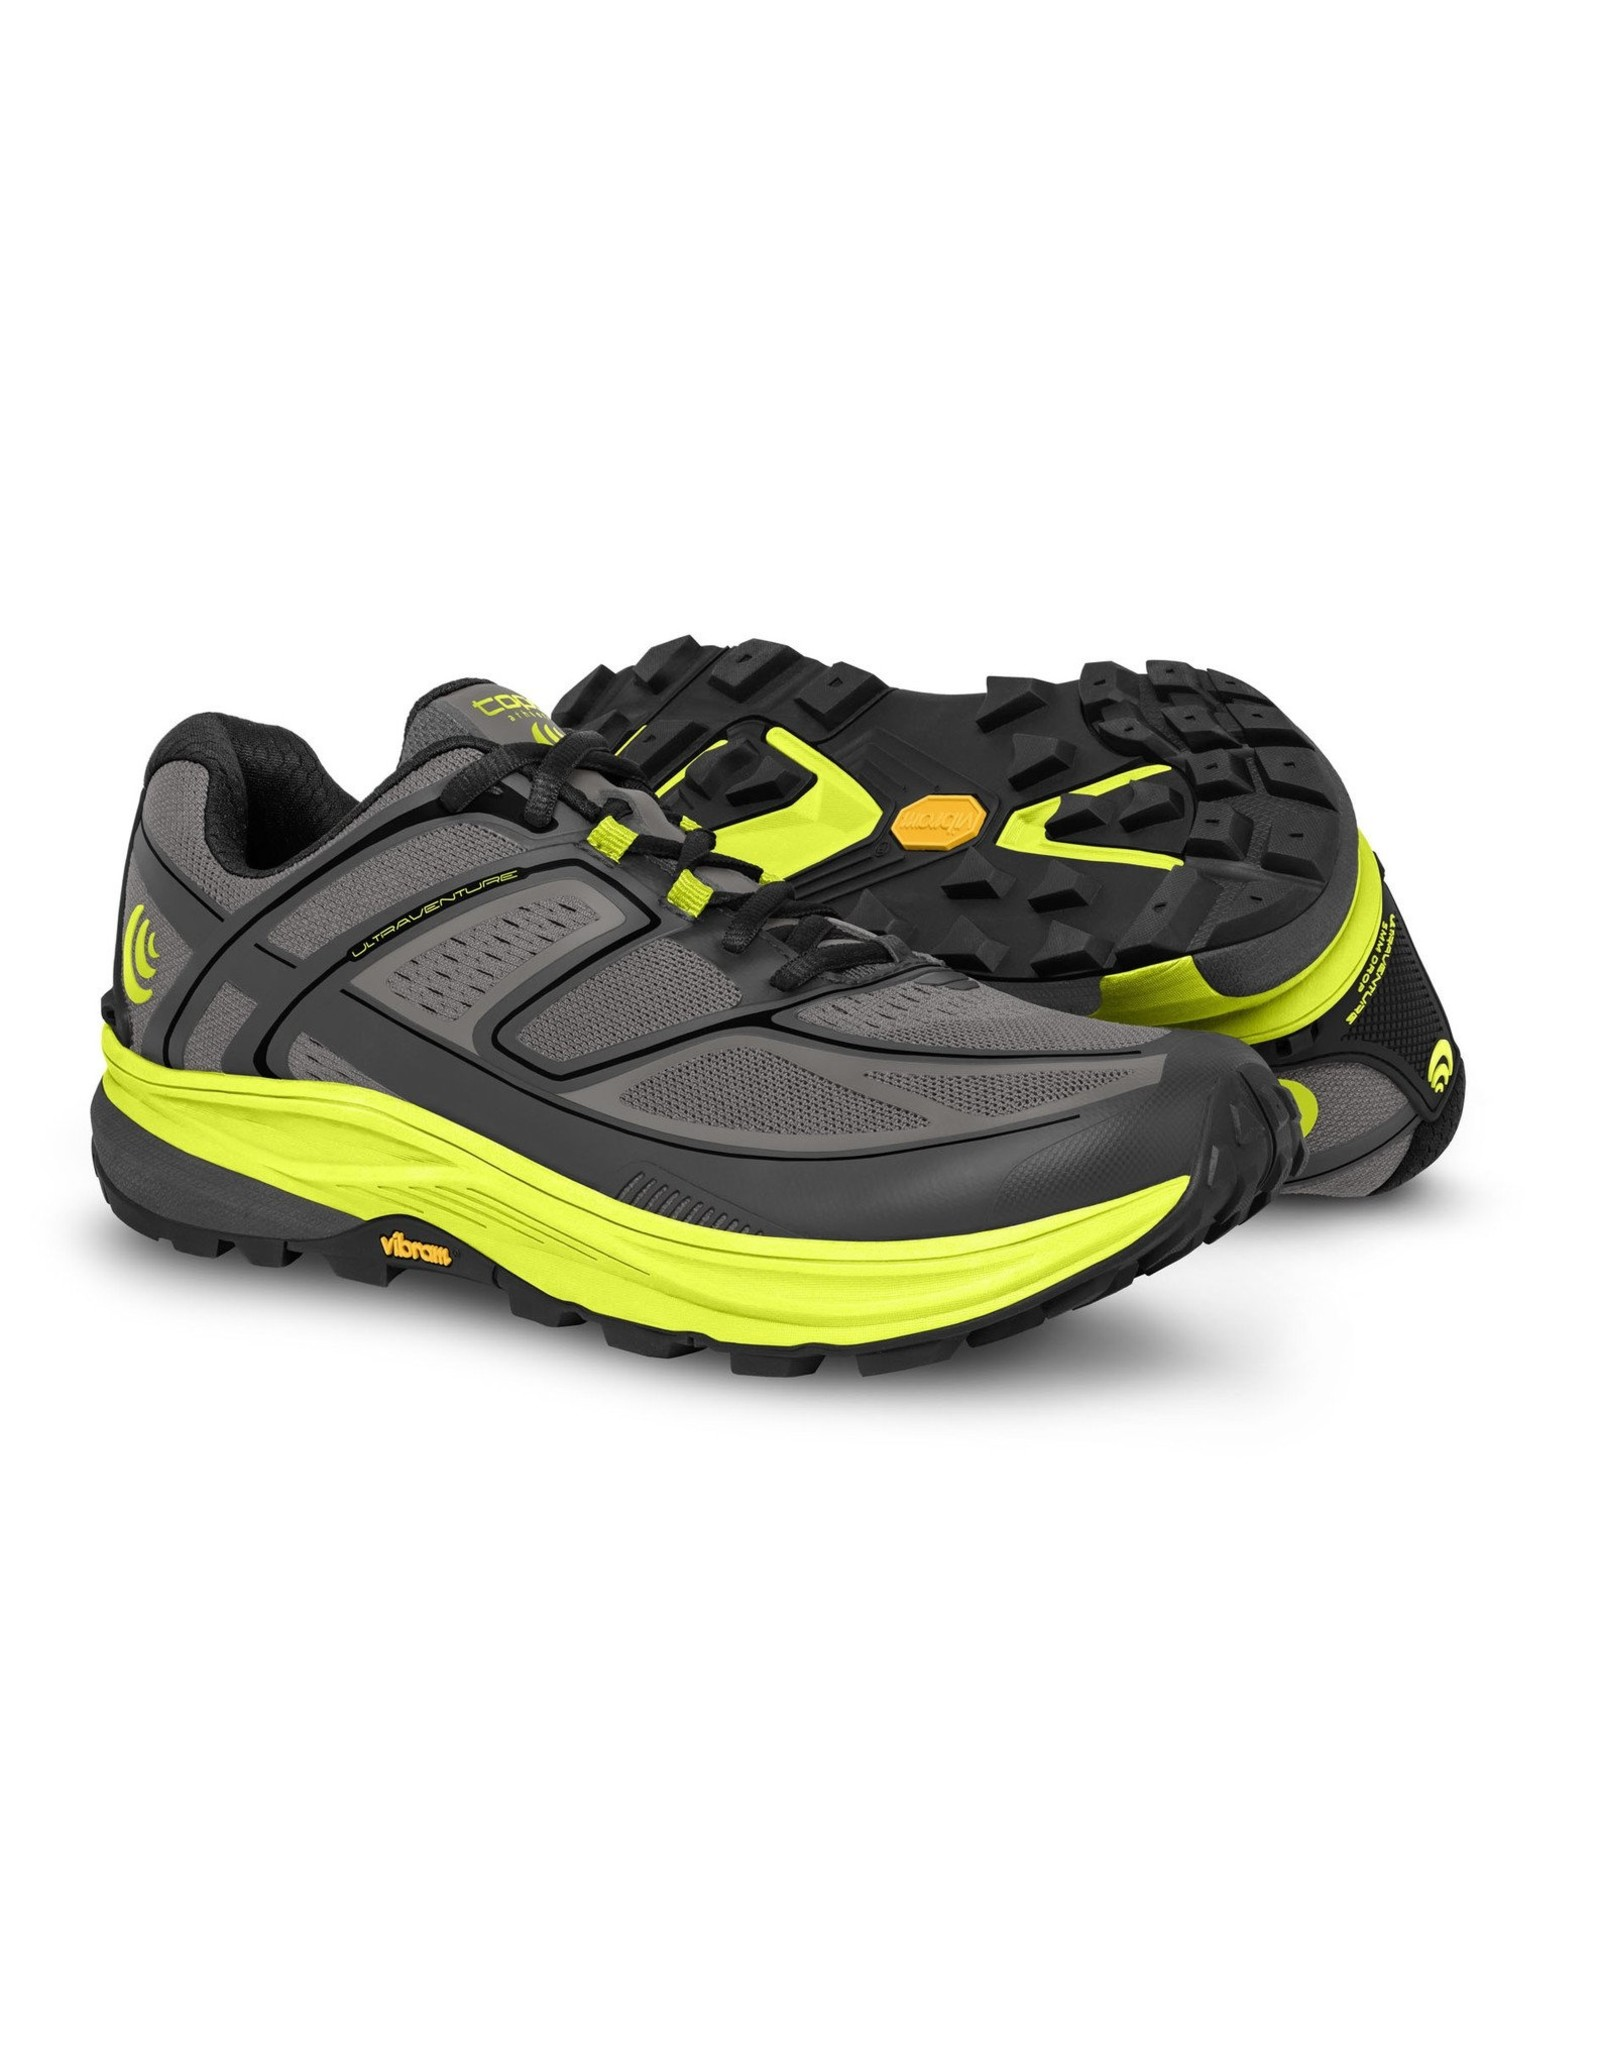 Topo Athletic  Topo Athletic Ultraventure Trail-Running Shoes - Grey/Green, Men's, Size 11